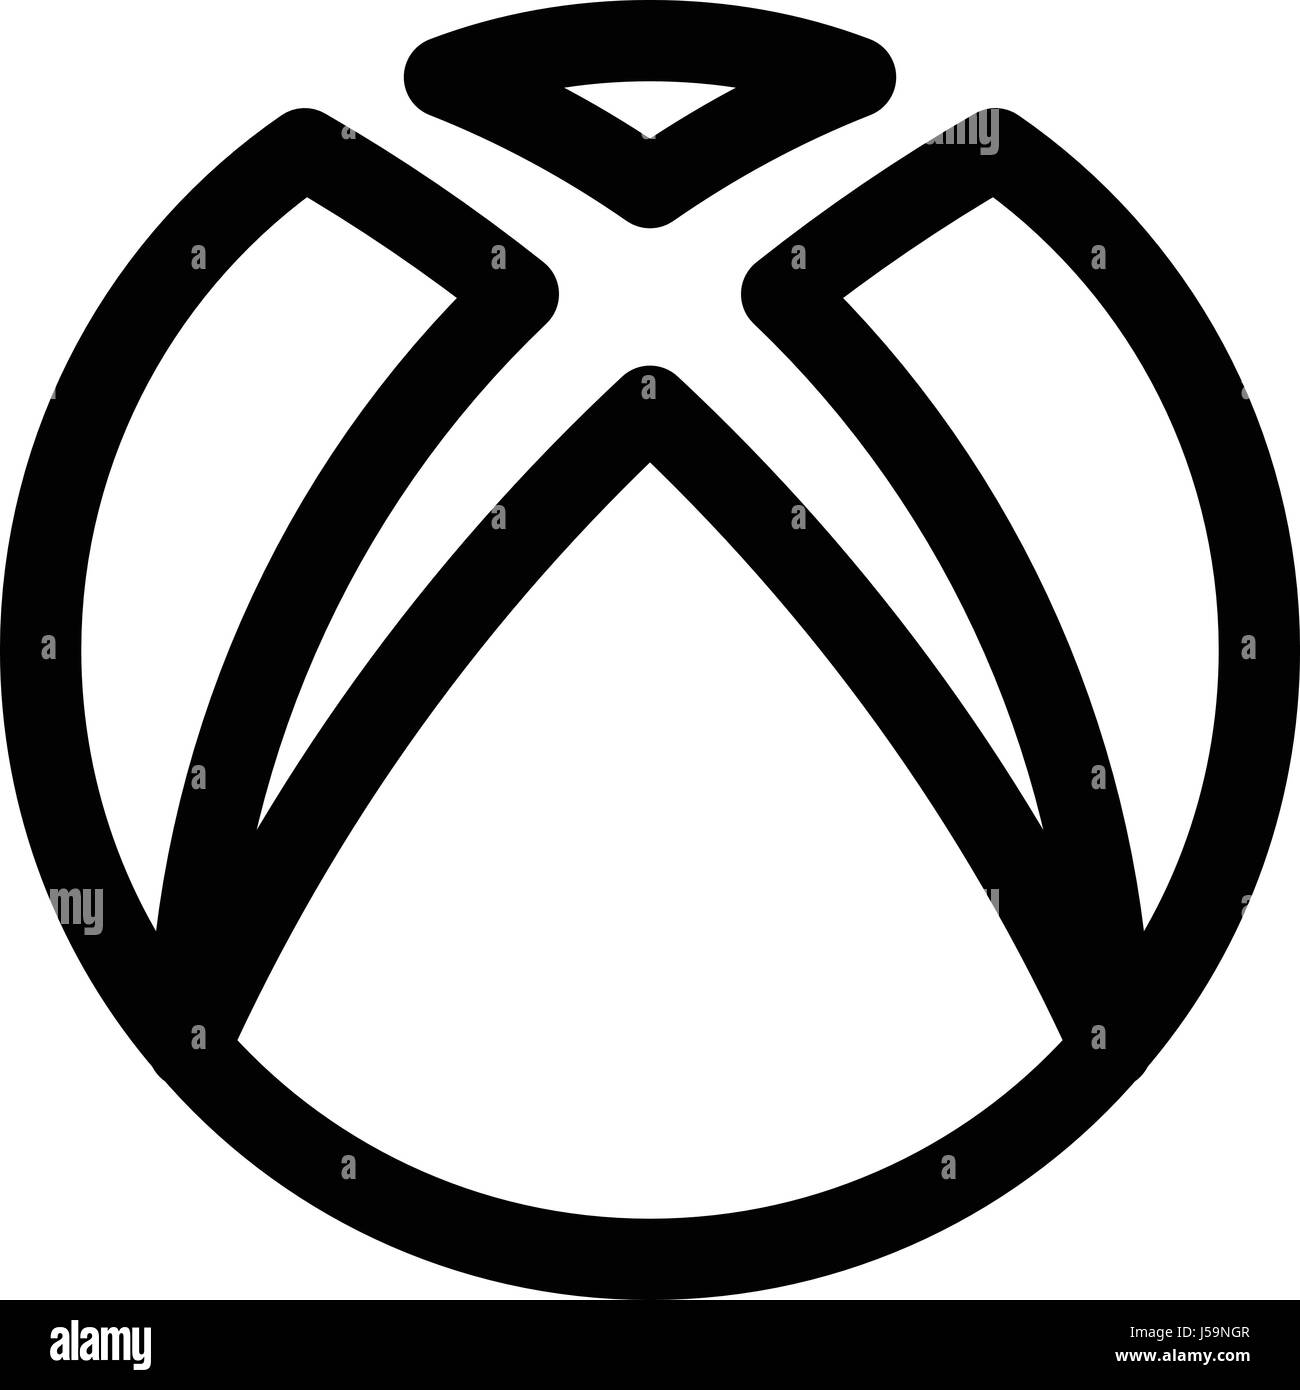 xbox Stock Vector Art & Illustration, Vector Image: 140970727 - Alamy